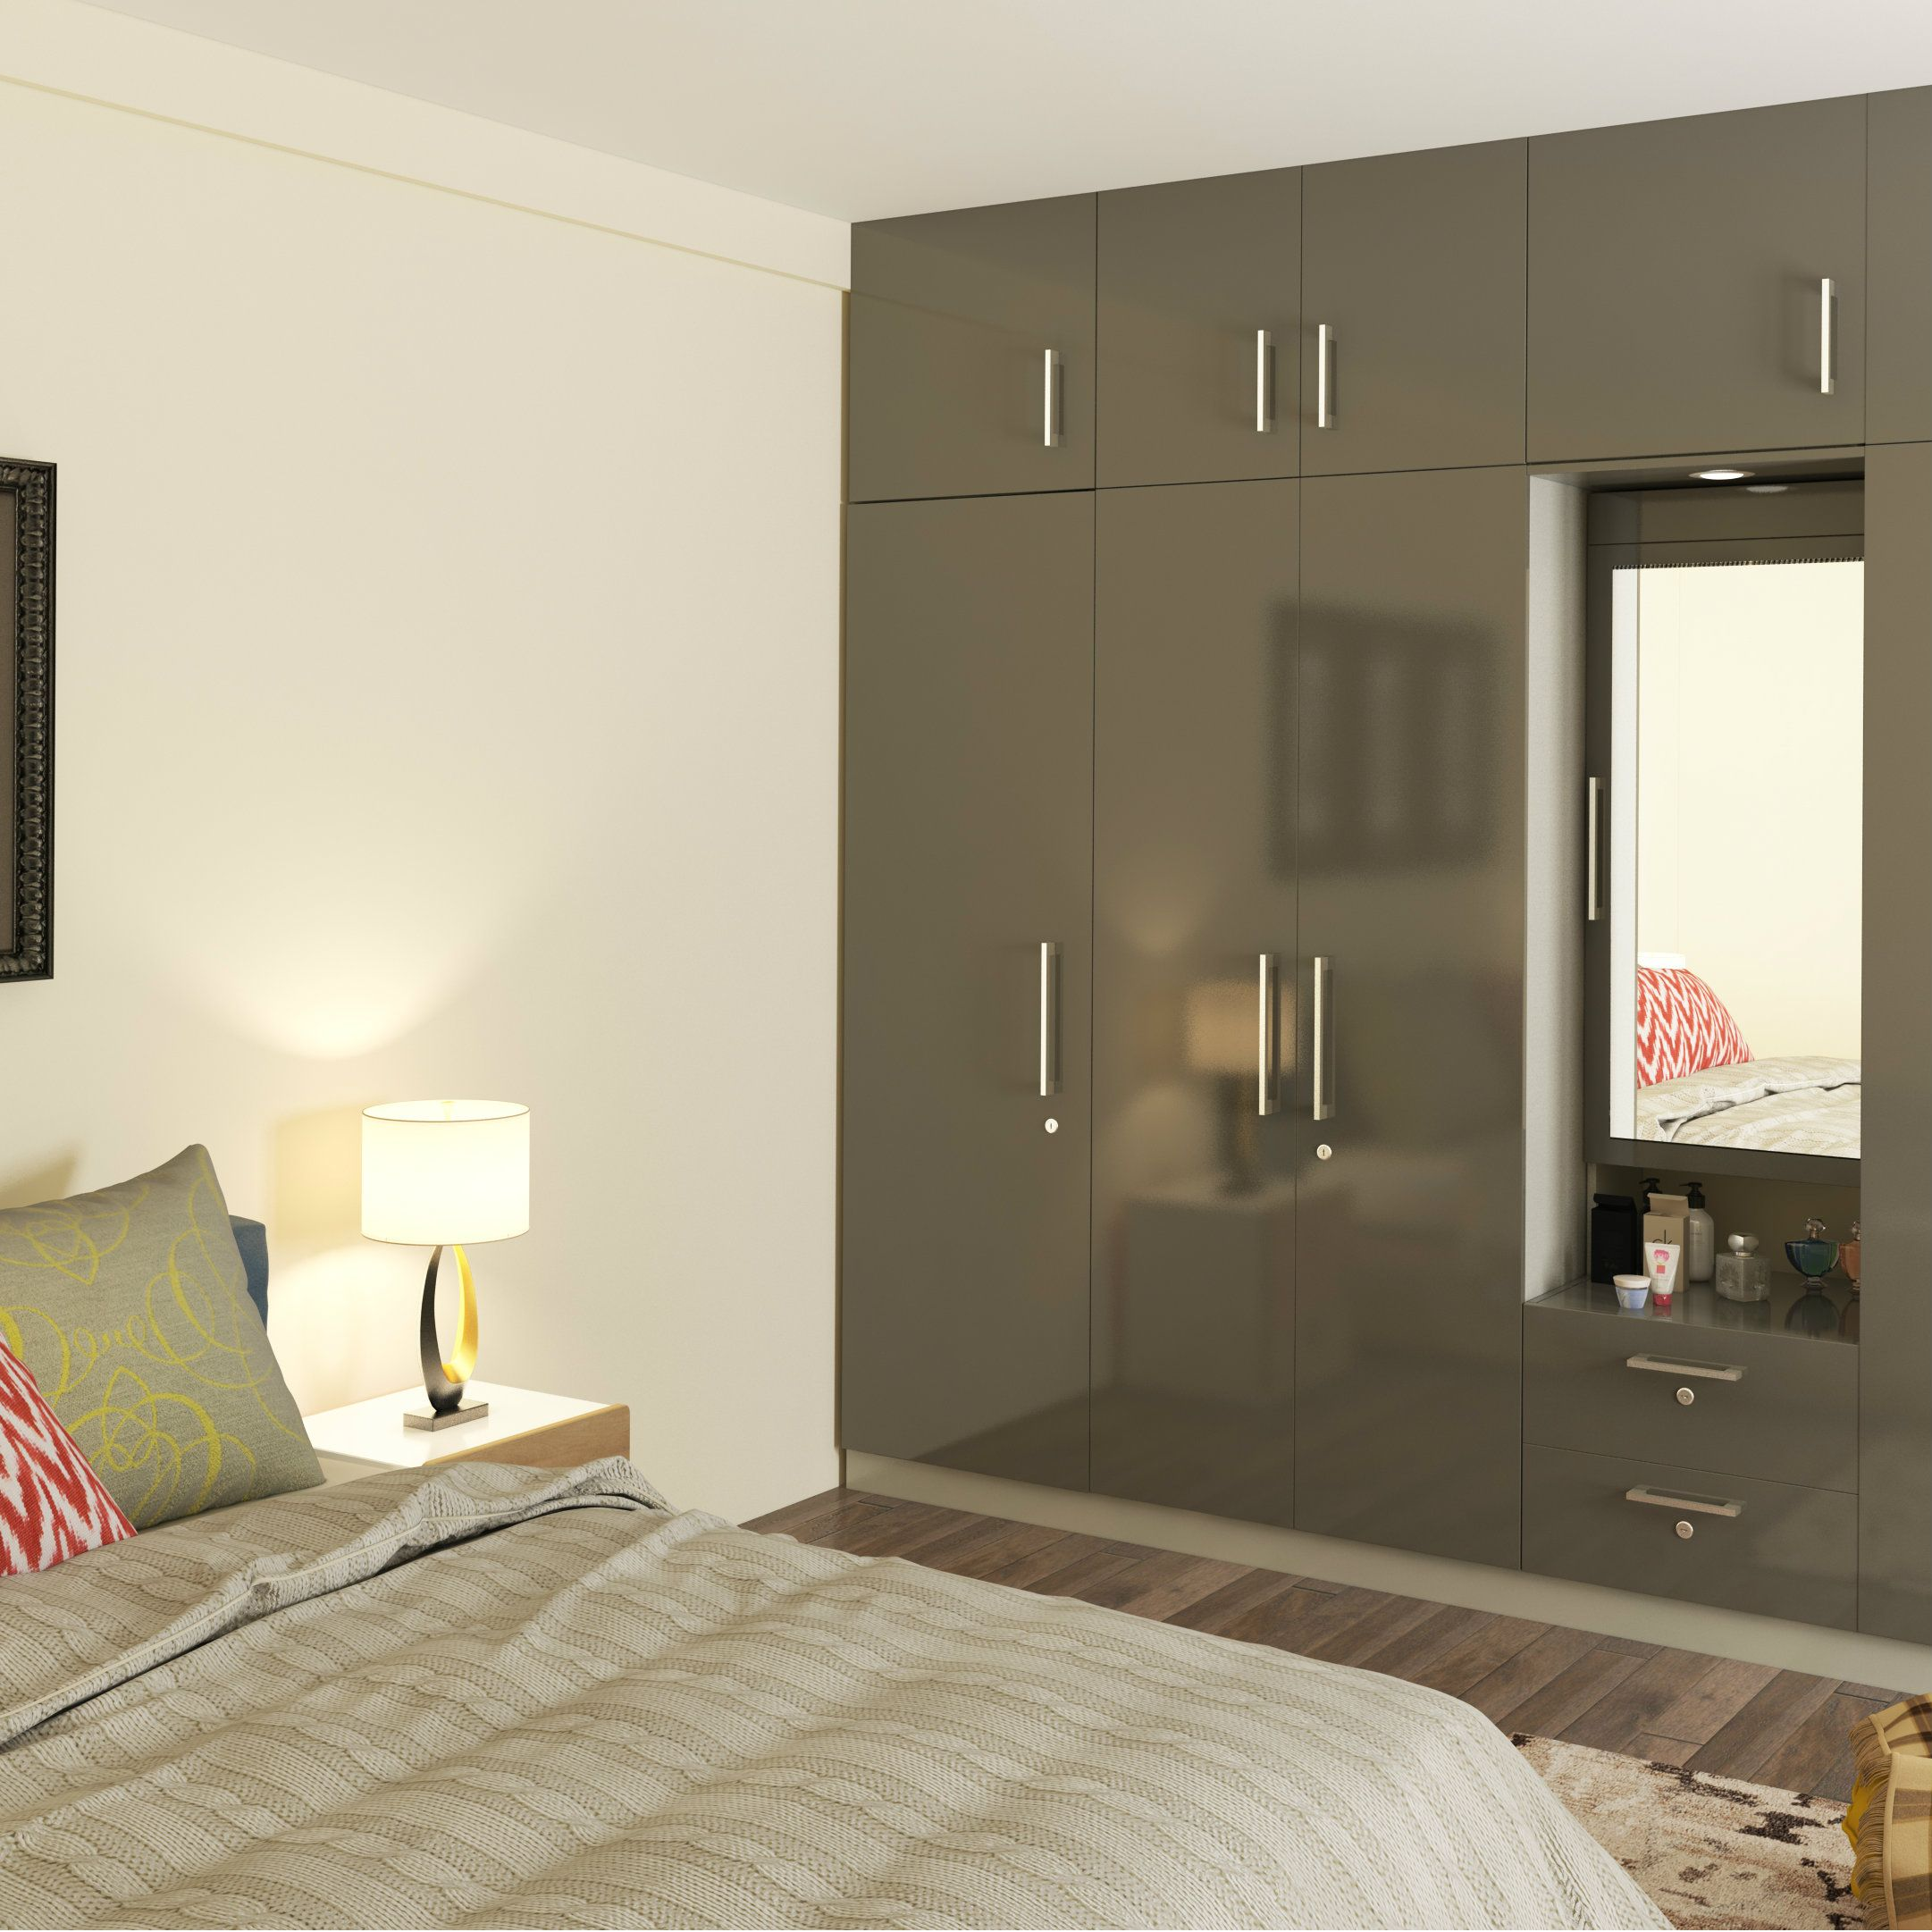 Pin on Modular Wardrobes for Bedrooms